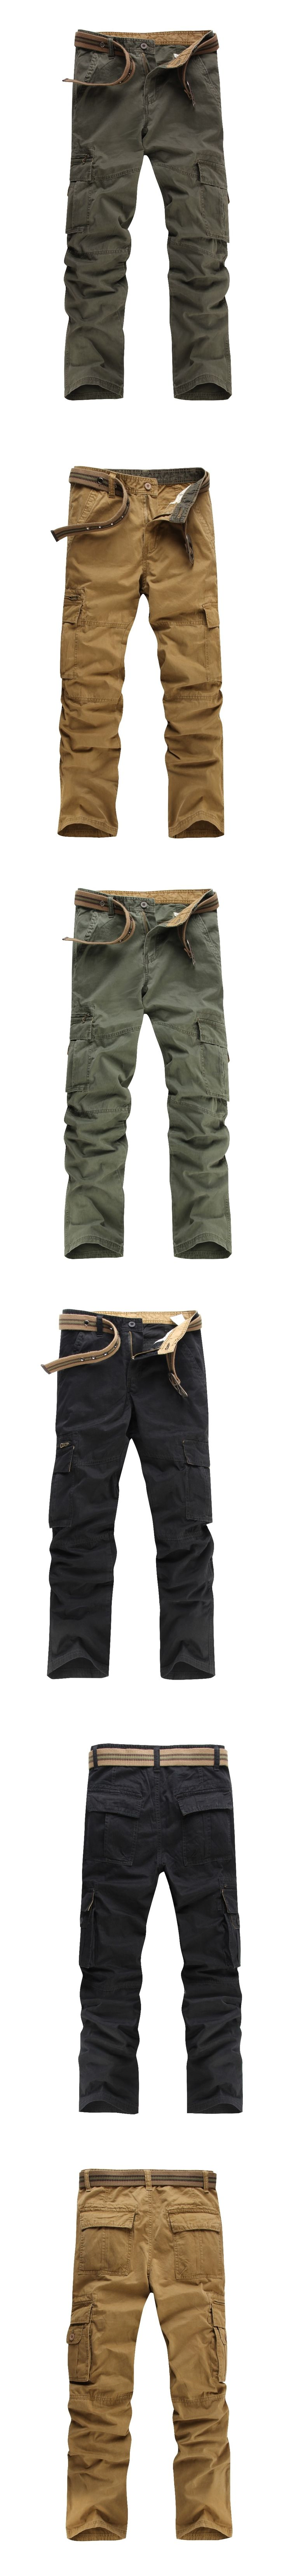 2017 New Tactical Cargo Pants Men Combat Army Military Pants Cotton Stretch Flexible Man Casual Trousers with Pockets